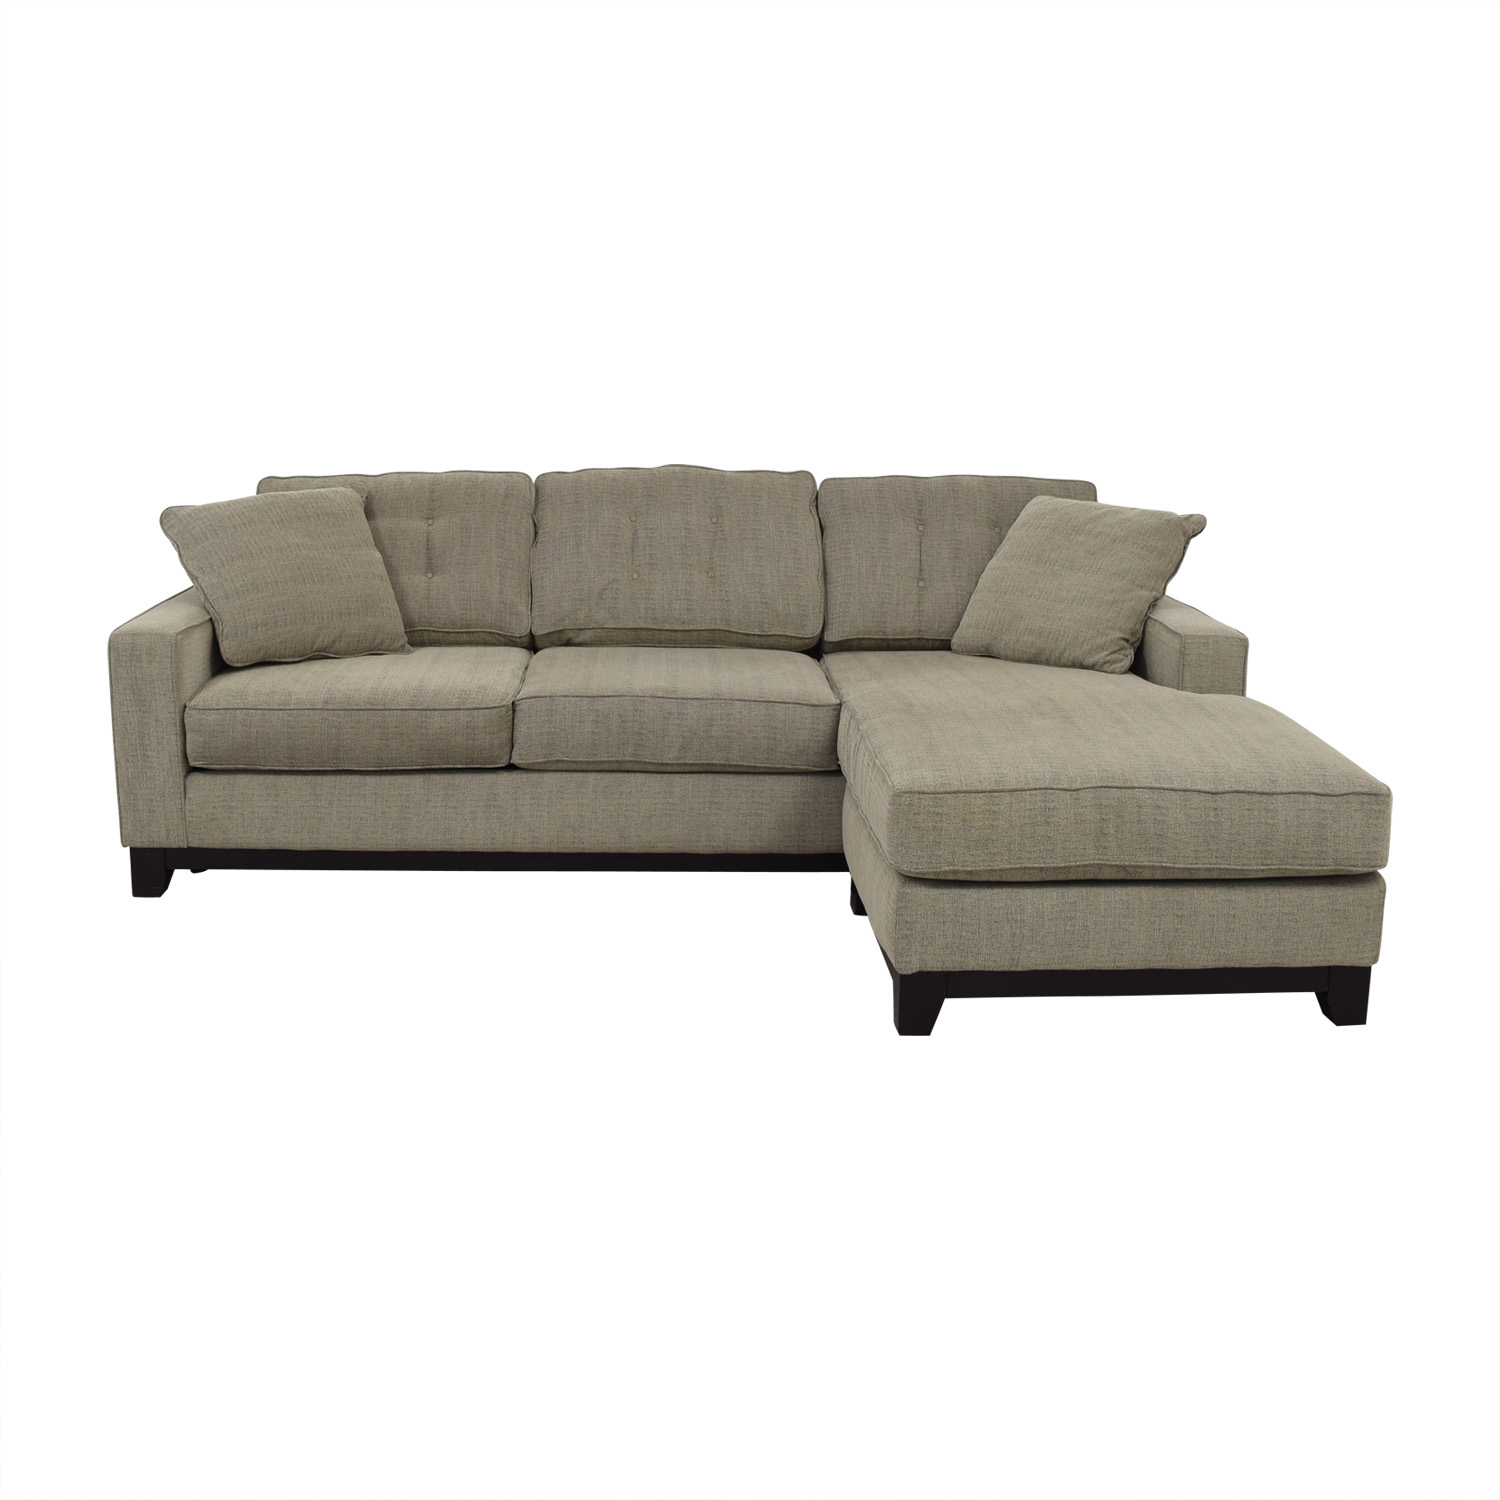 Macy's Macy's Gray Chaise Sectional nj